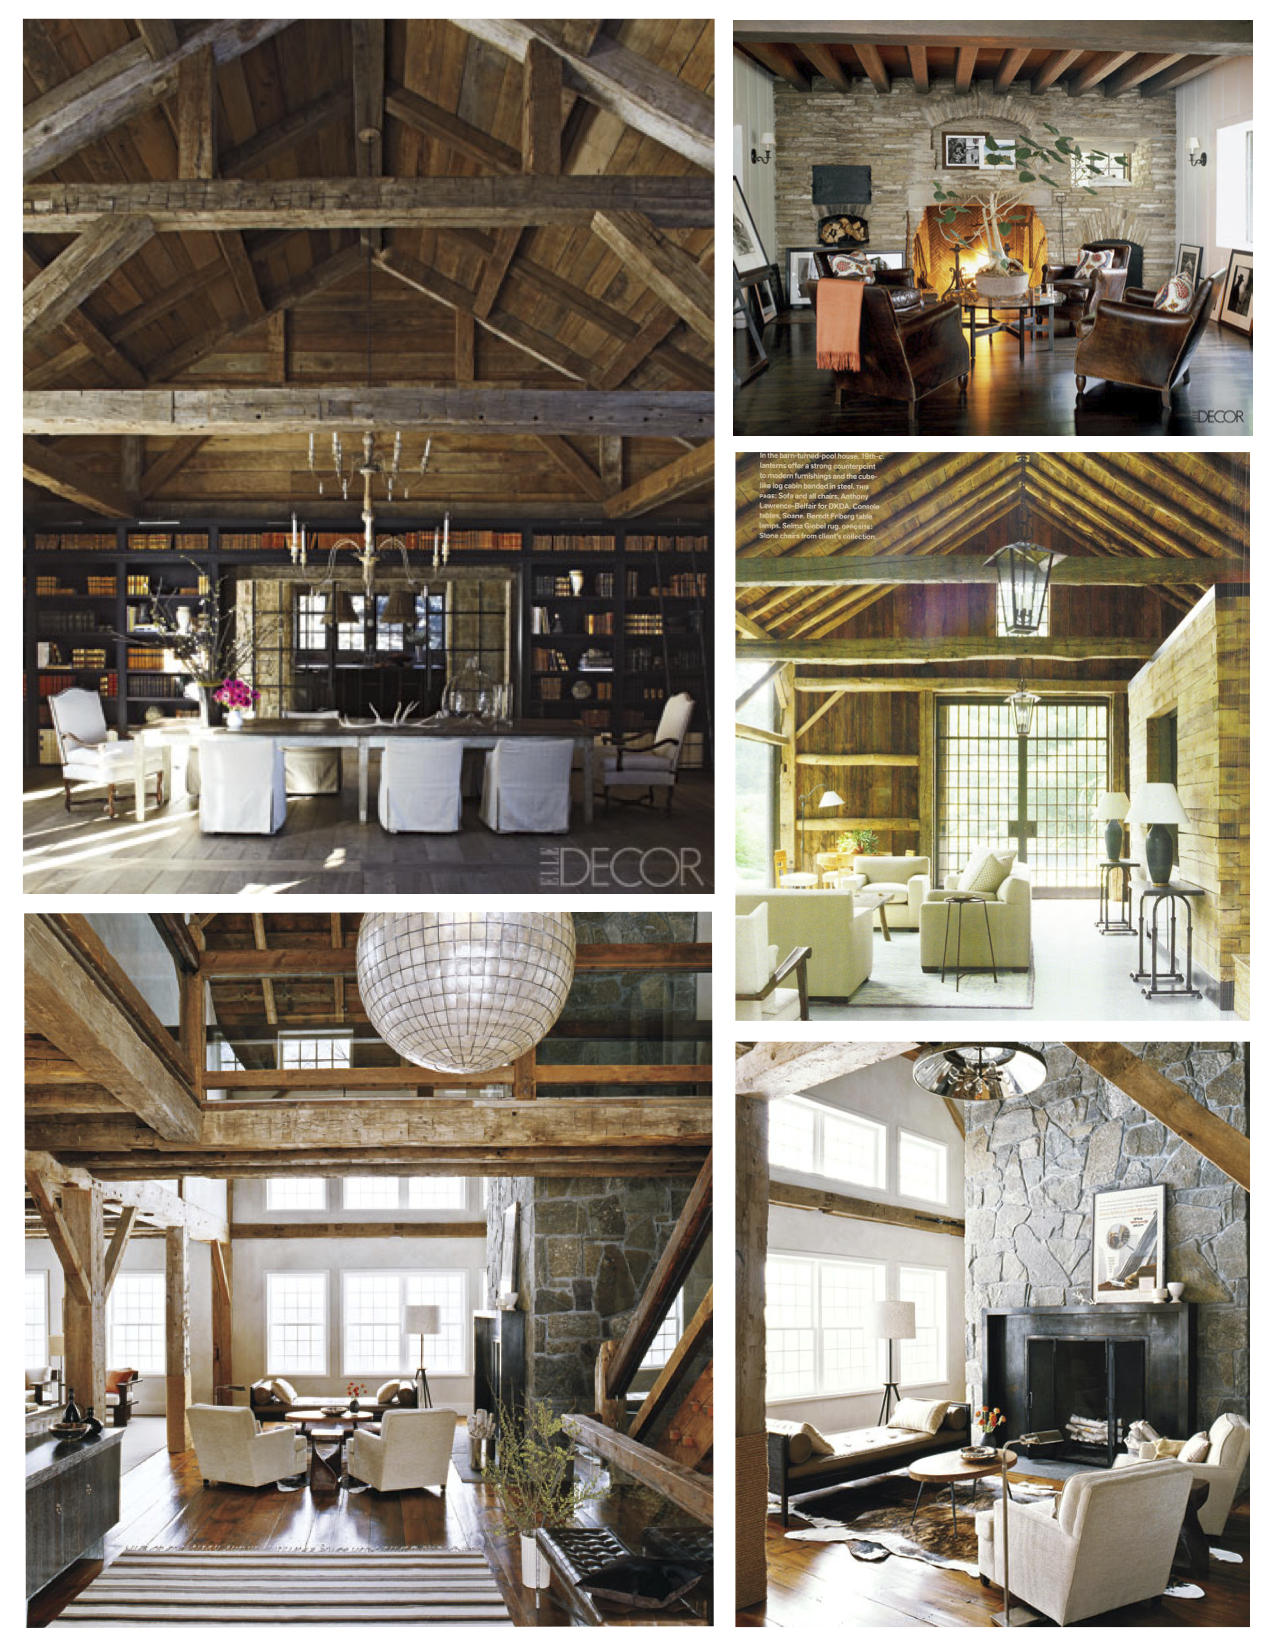 Beams Of Visual Distinction Within The Interior